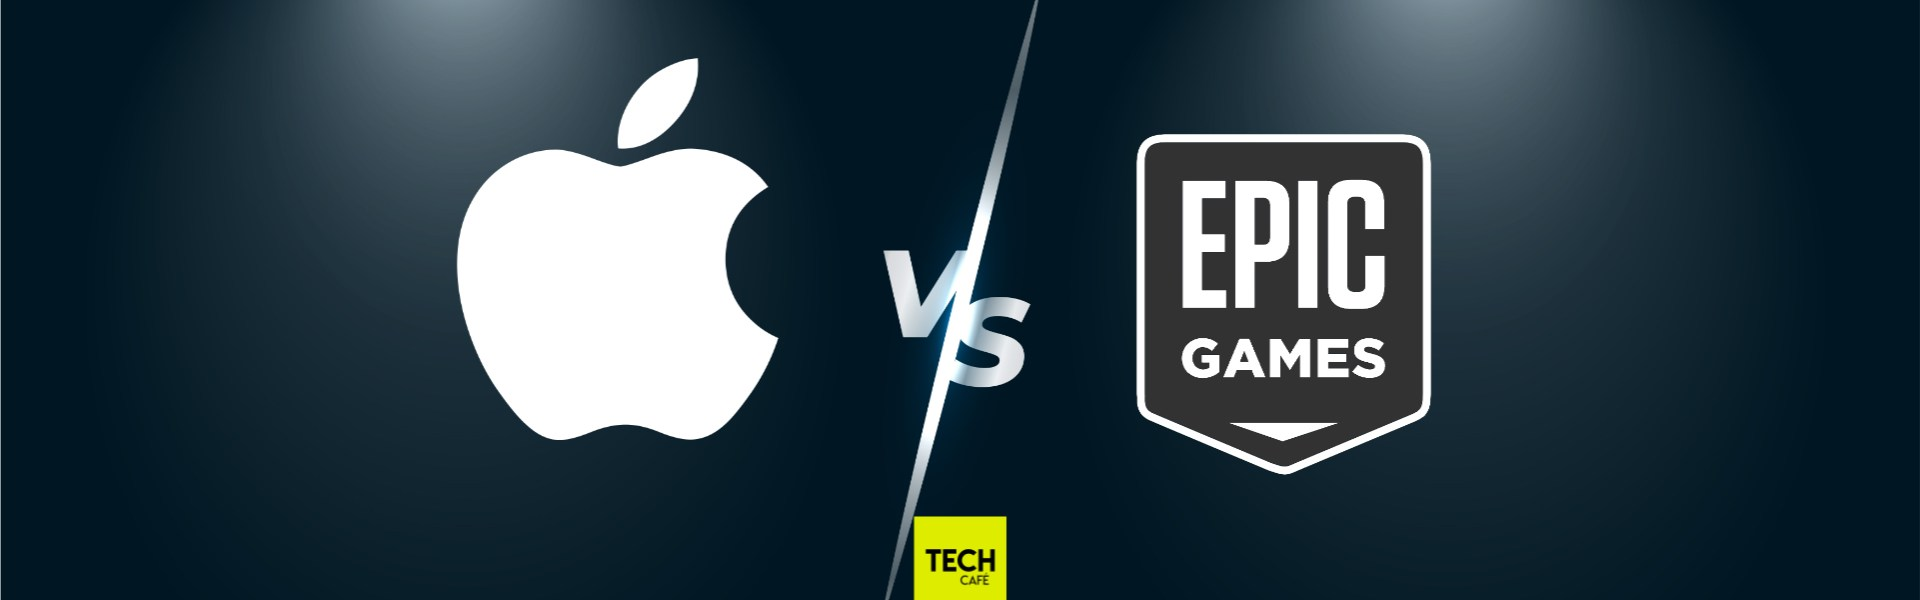 Epic VS Apple Tech Café podcast